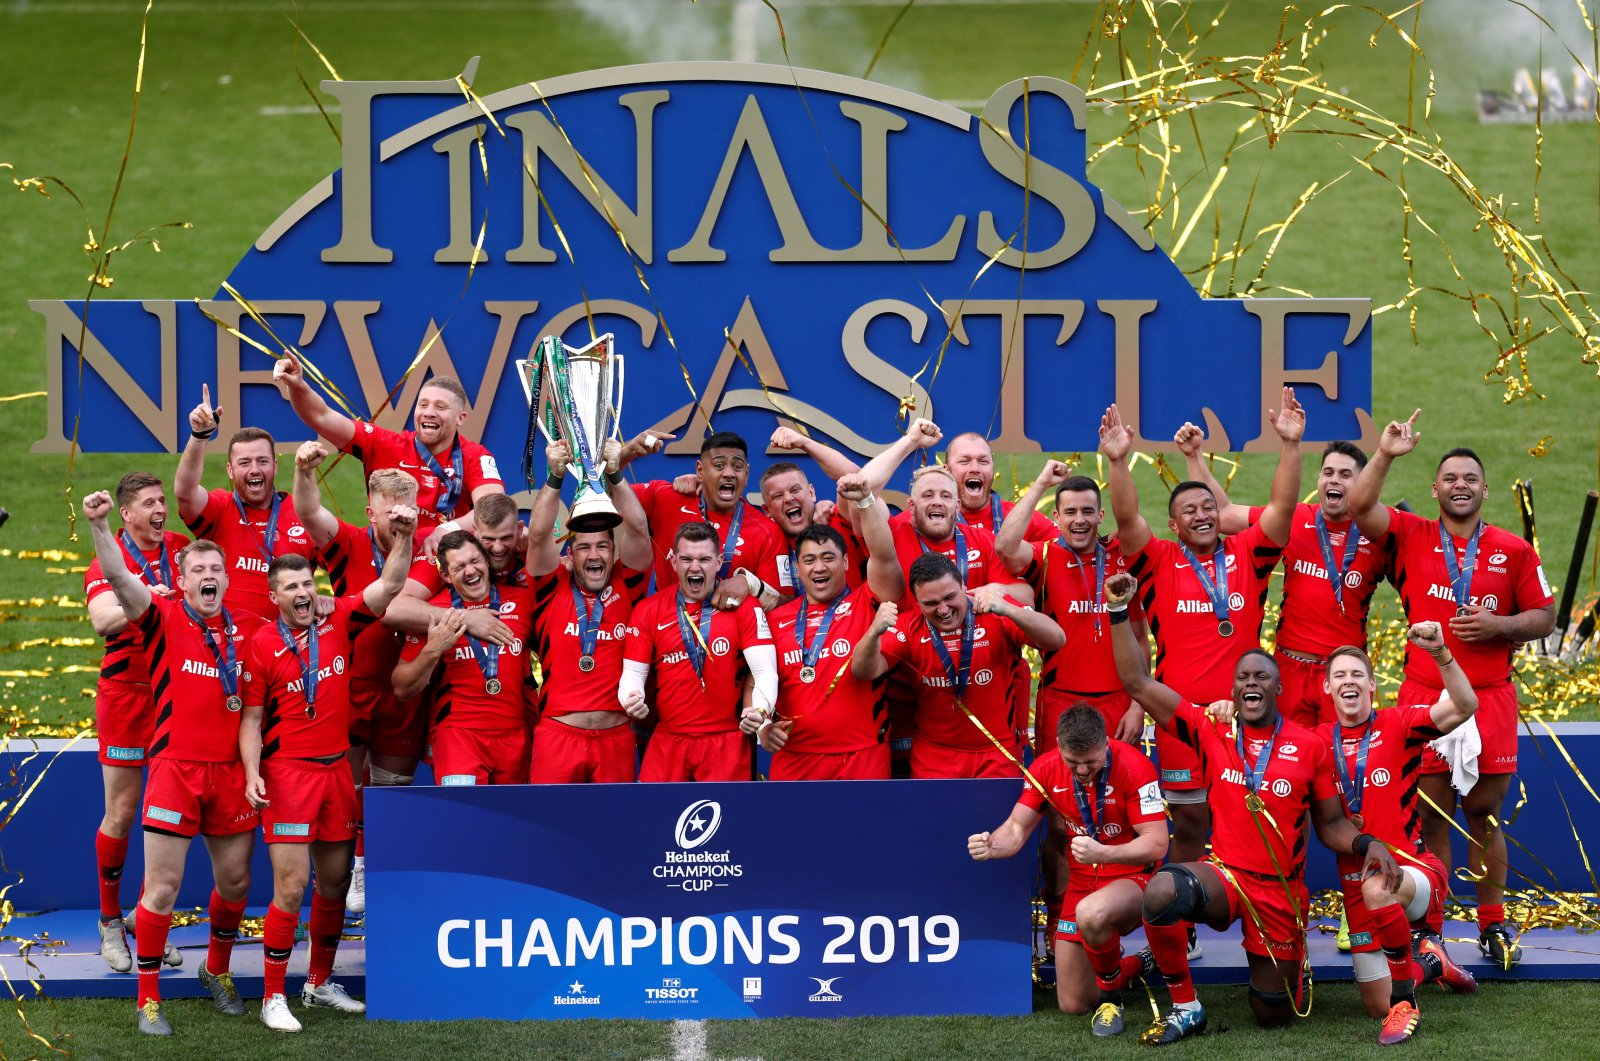 Saracens players celebrate winning European Champions Cup Final, Newcastle, Britain, May 11, 2019. (Reuters Photo)